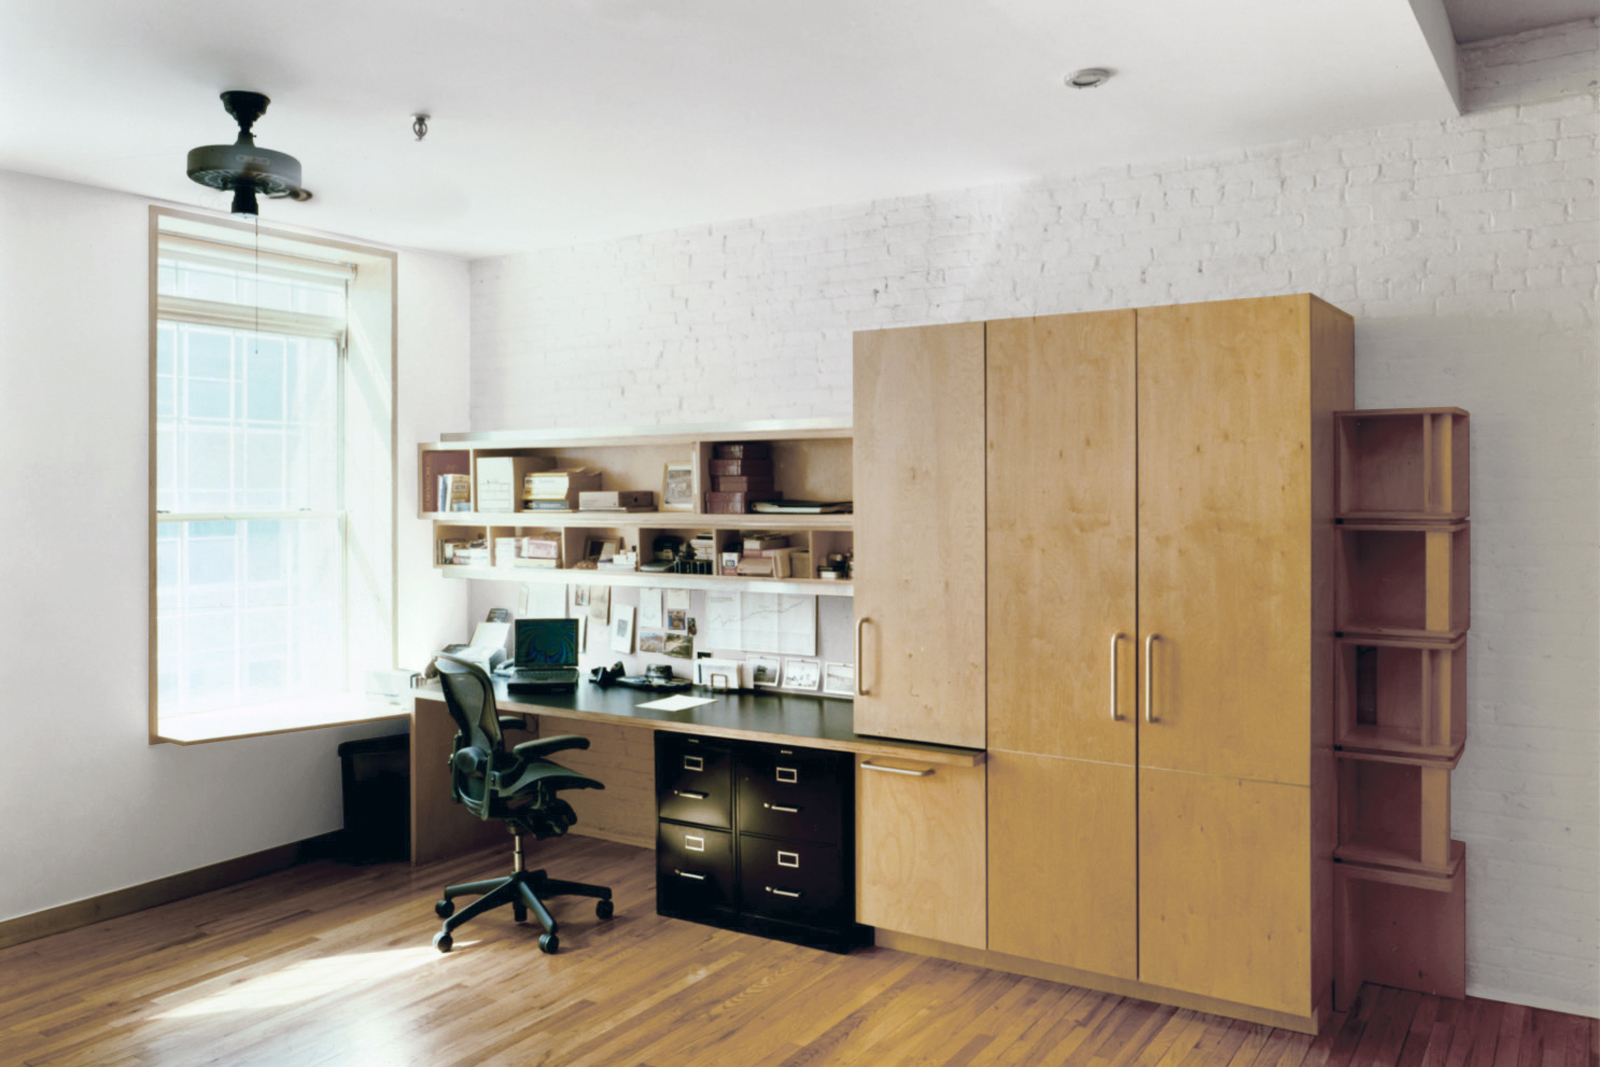 12-res4-resolution-4-architecture-modern-apartment-residential-rons-loft-interior-office.jpg